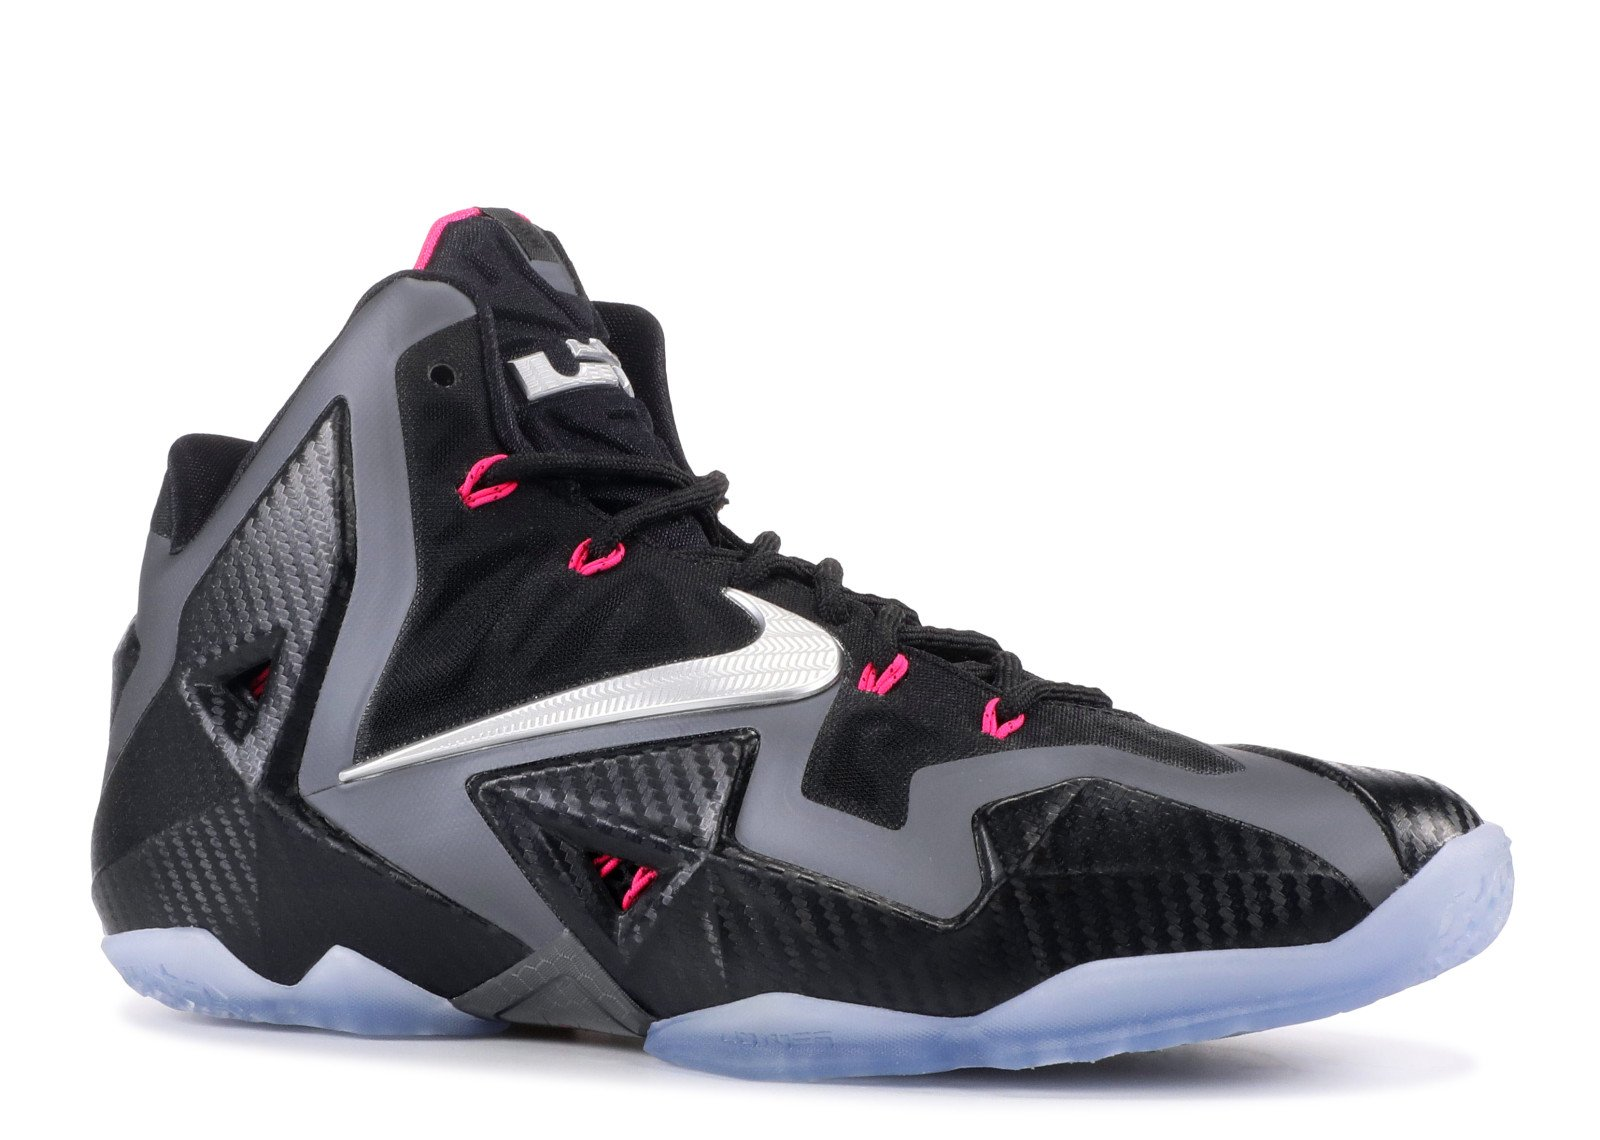 quality design 19976 5857c Galleon - Nike Men s Lebron XI Basketball Shoes - 616175 003 - Miami Night  (8)